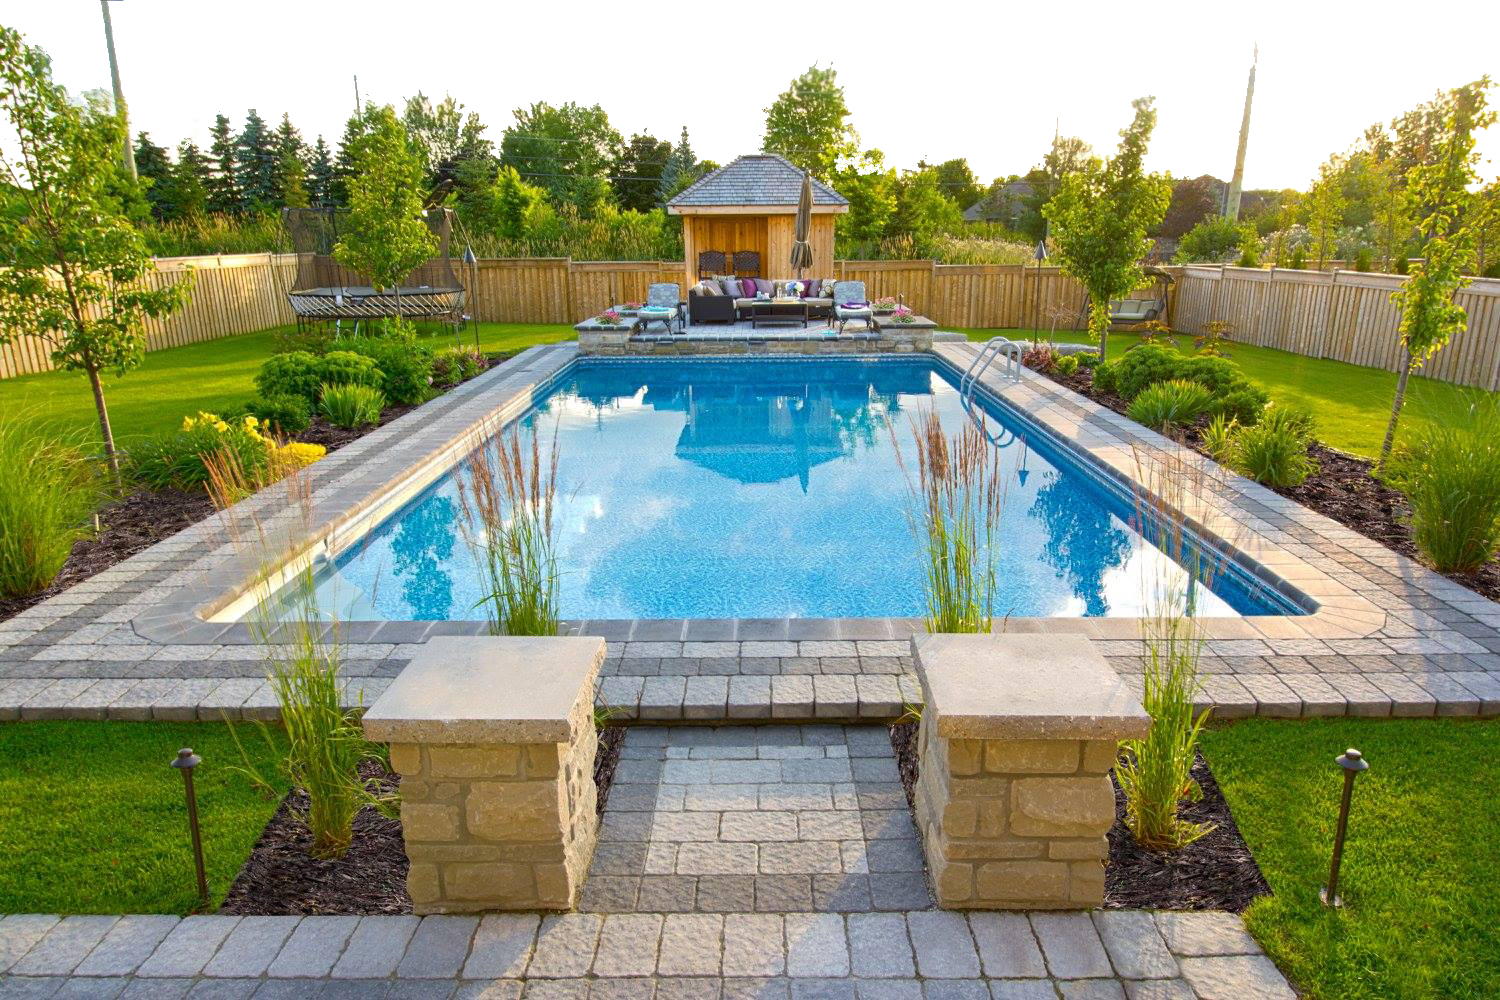 An insight into landscaping and swimming pool for your premises